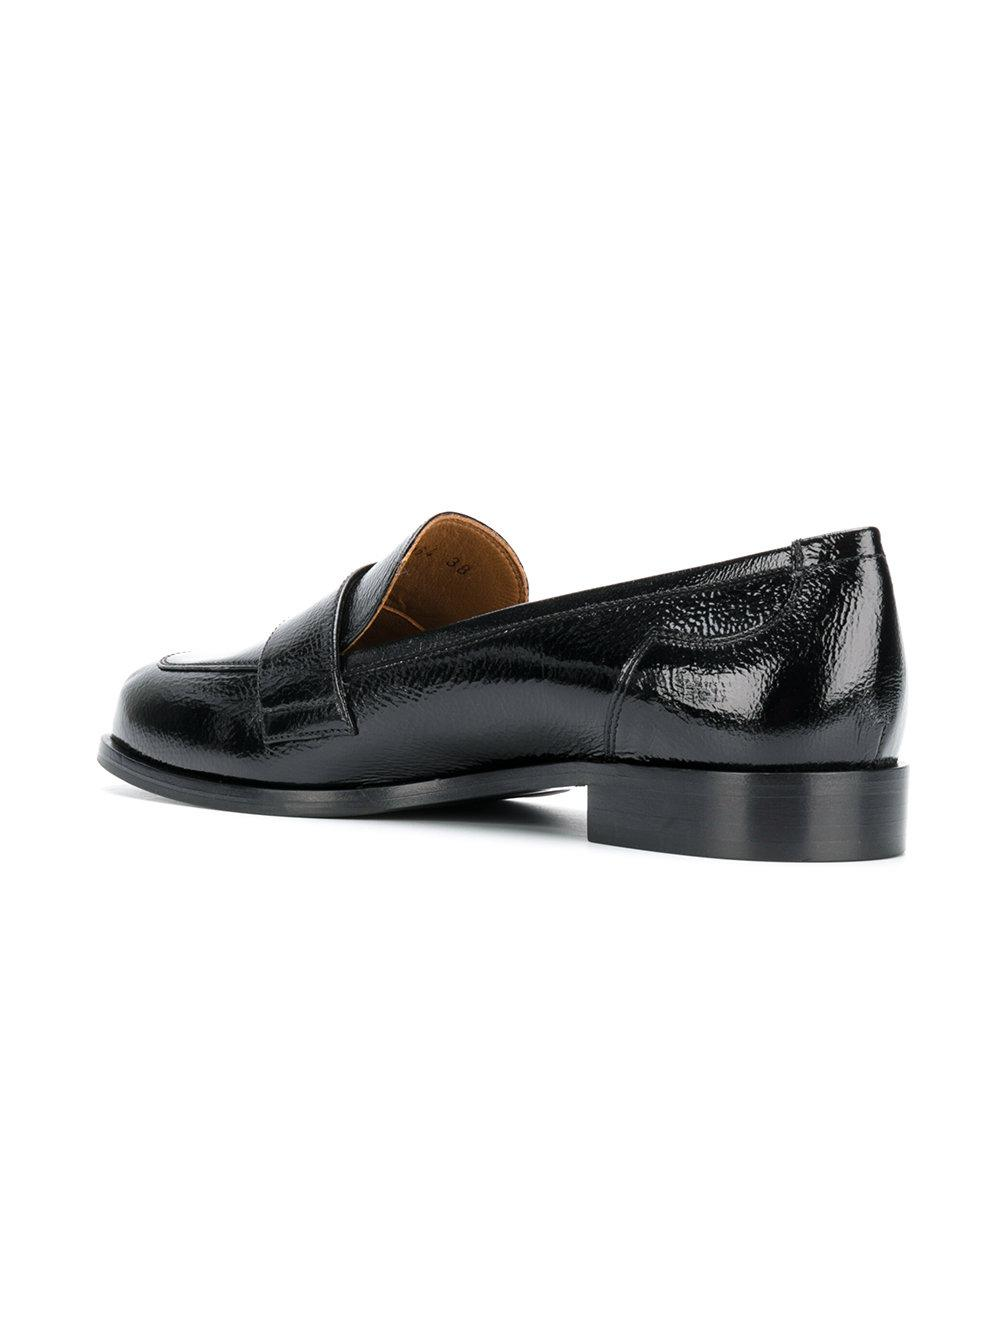 Outlet Store Locations Shopping Online Armani Buckled loafers Sale Latest Collections Outlet Comfortable Online OgsQxSu